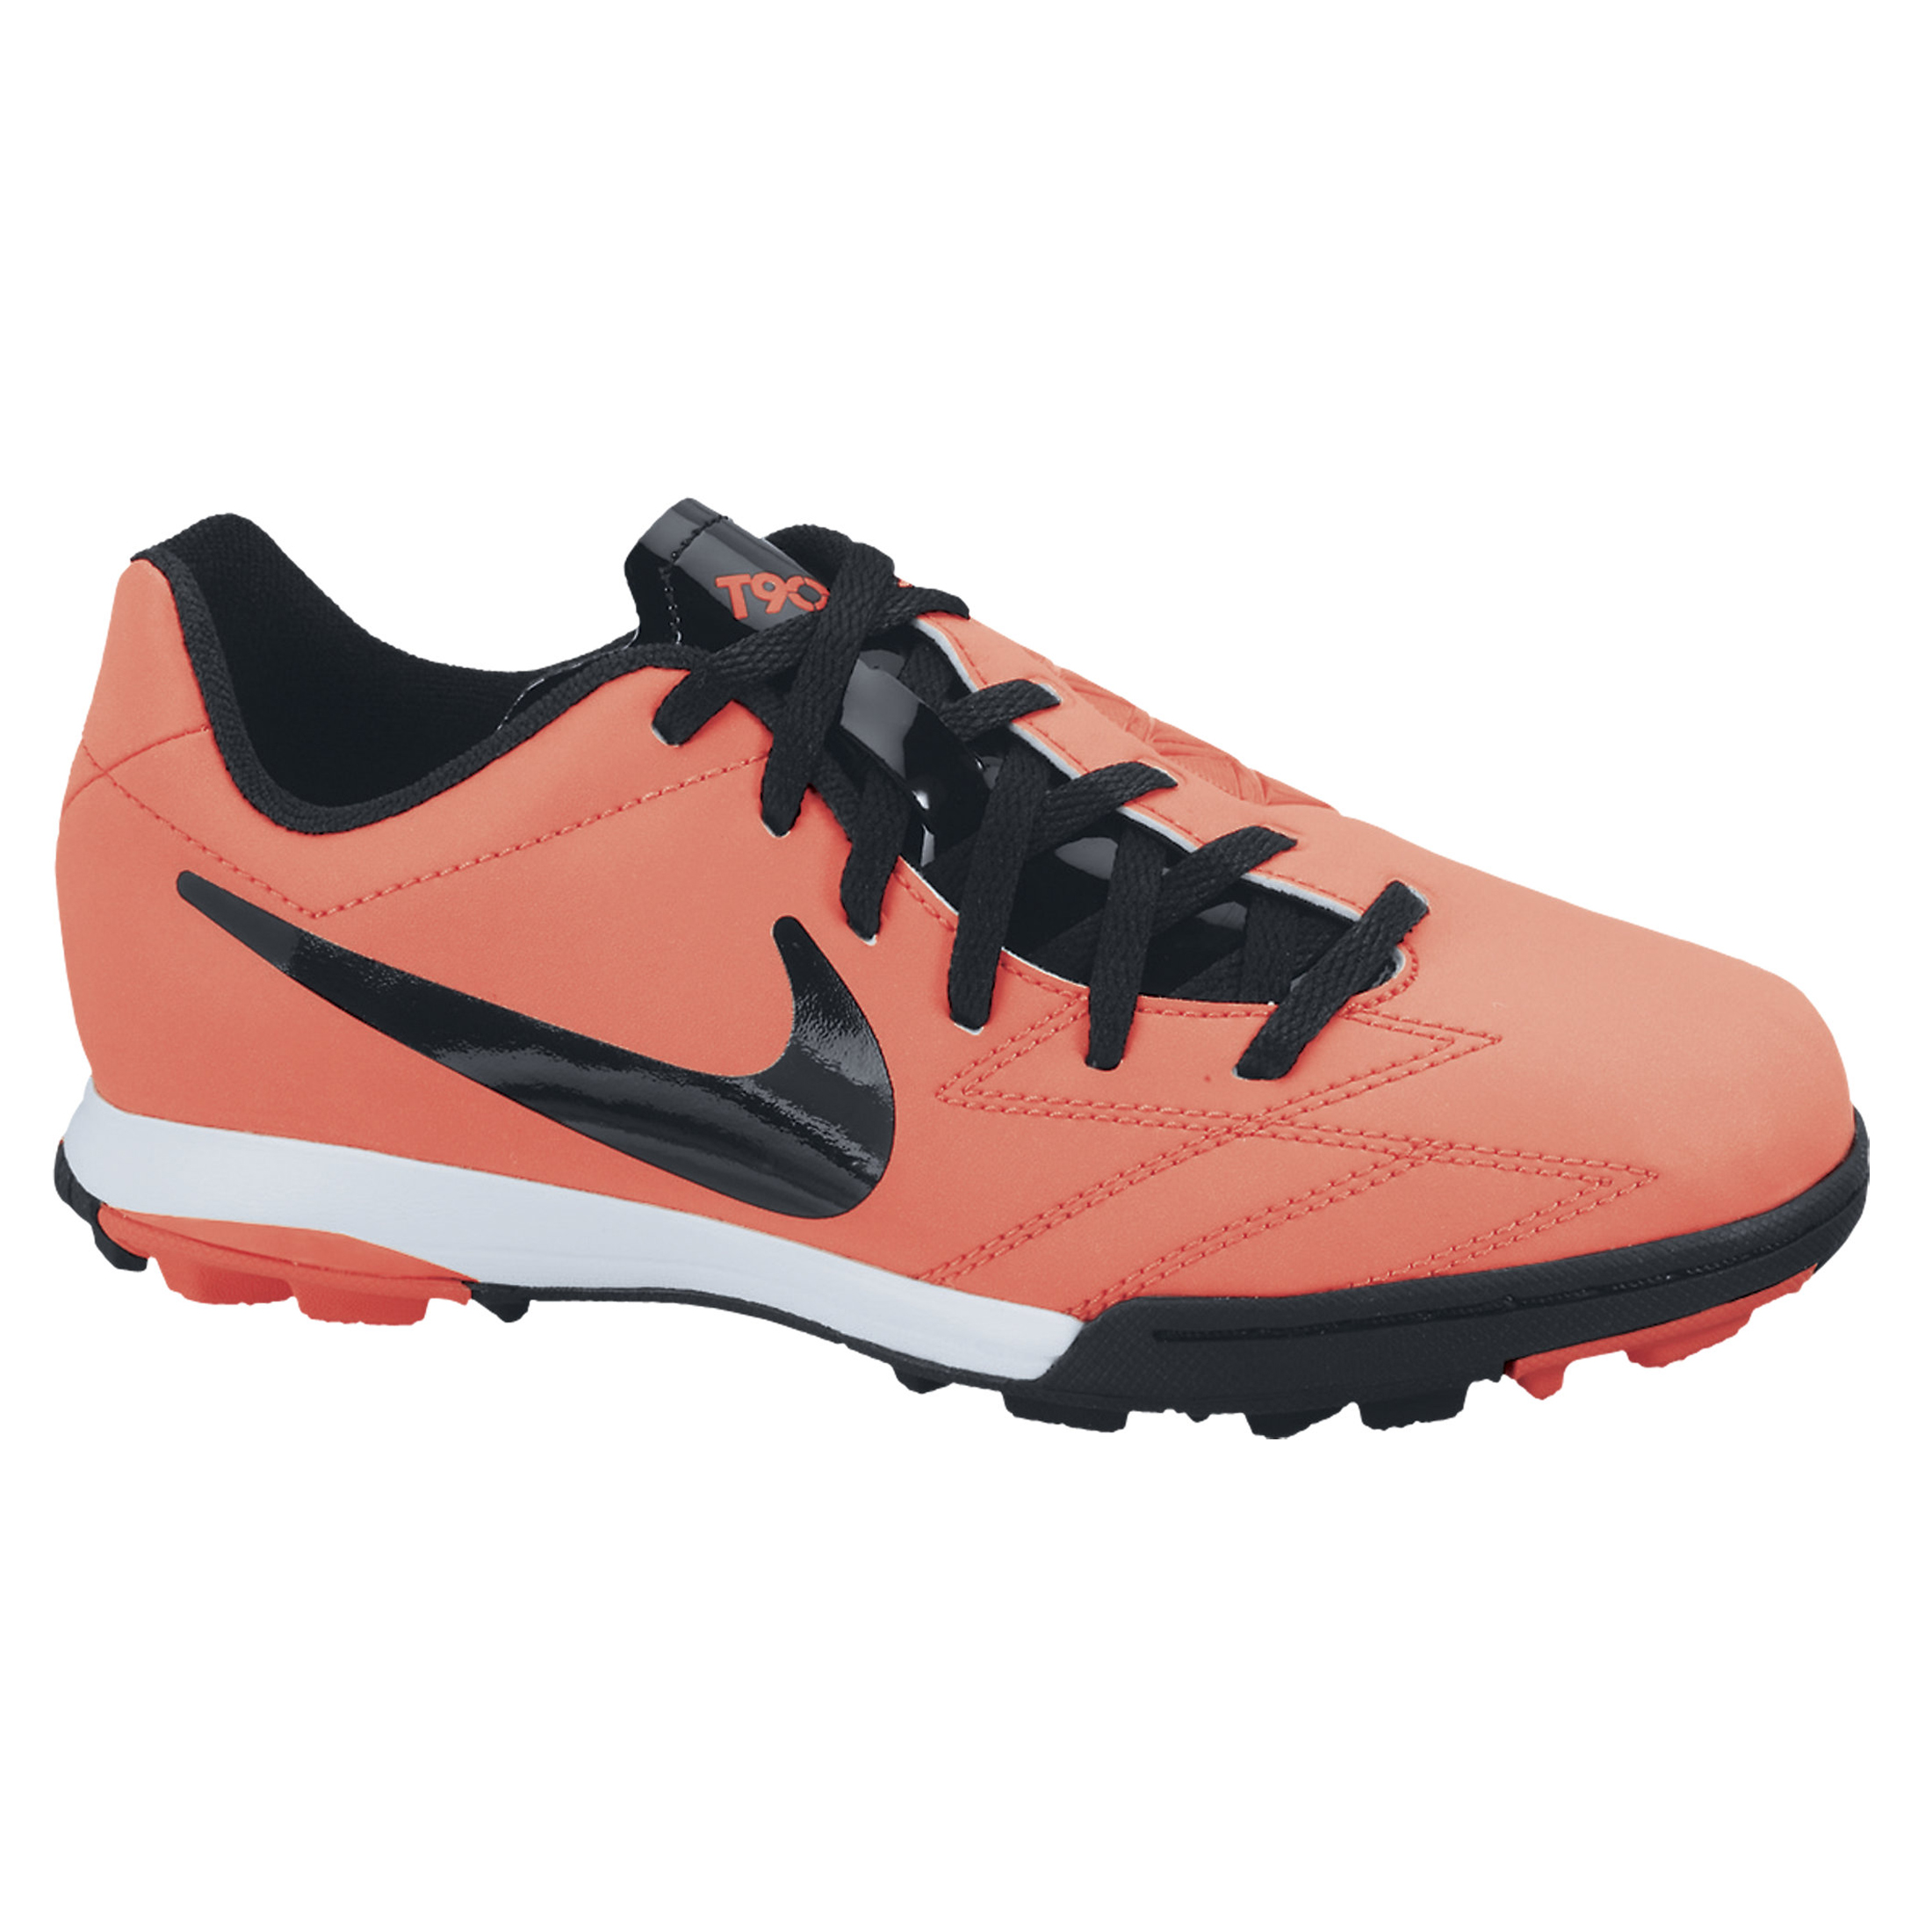 Nike Total90 Shoot IV Astroturf Trainers - Bright Mango/Black/Total Crimson/White - Kids